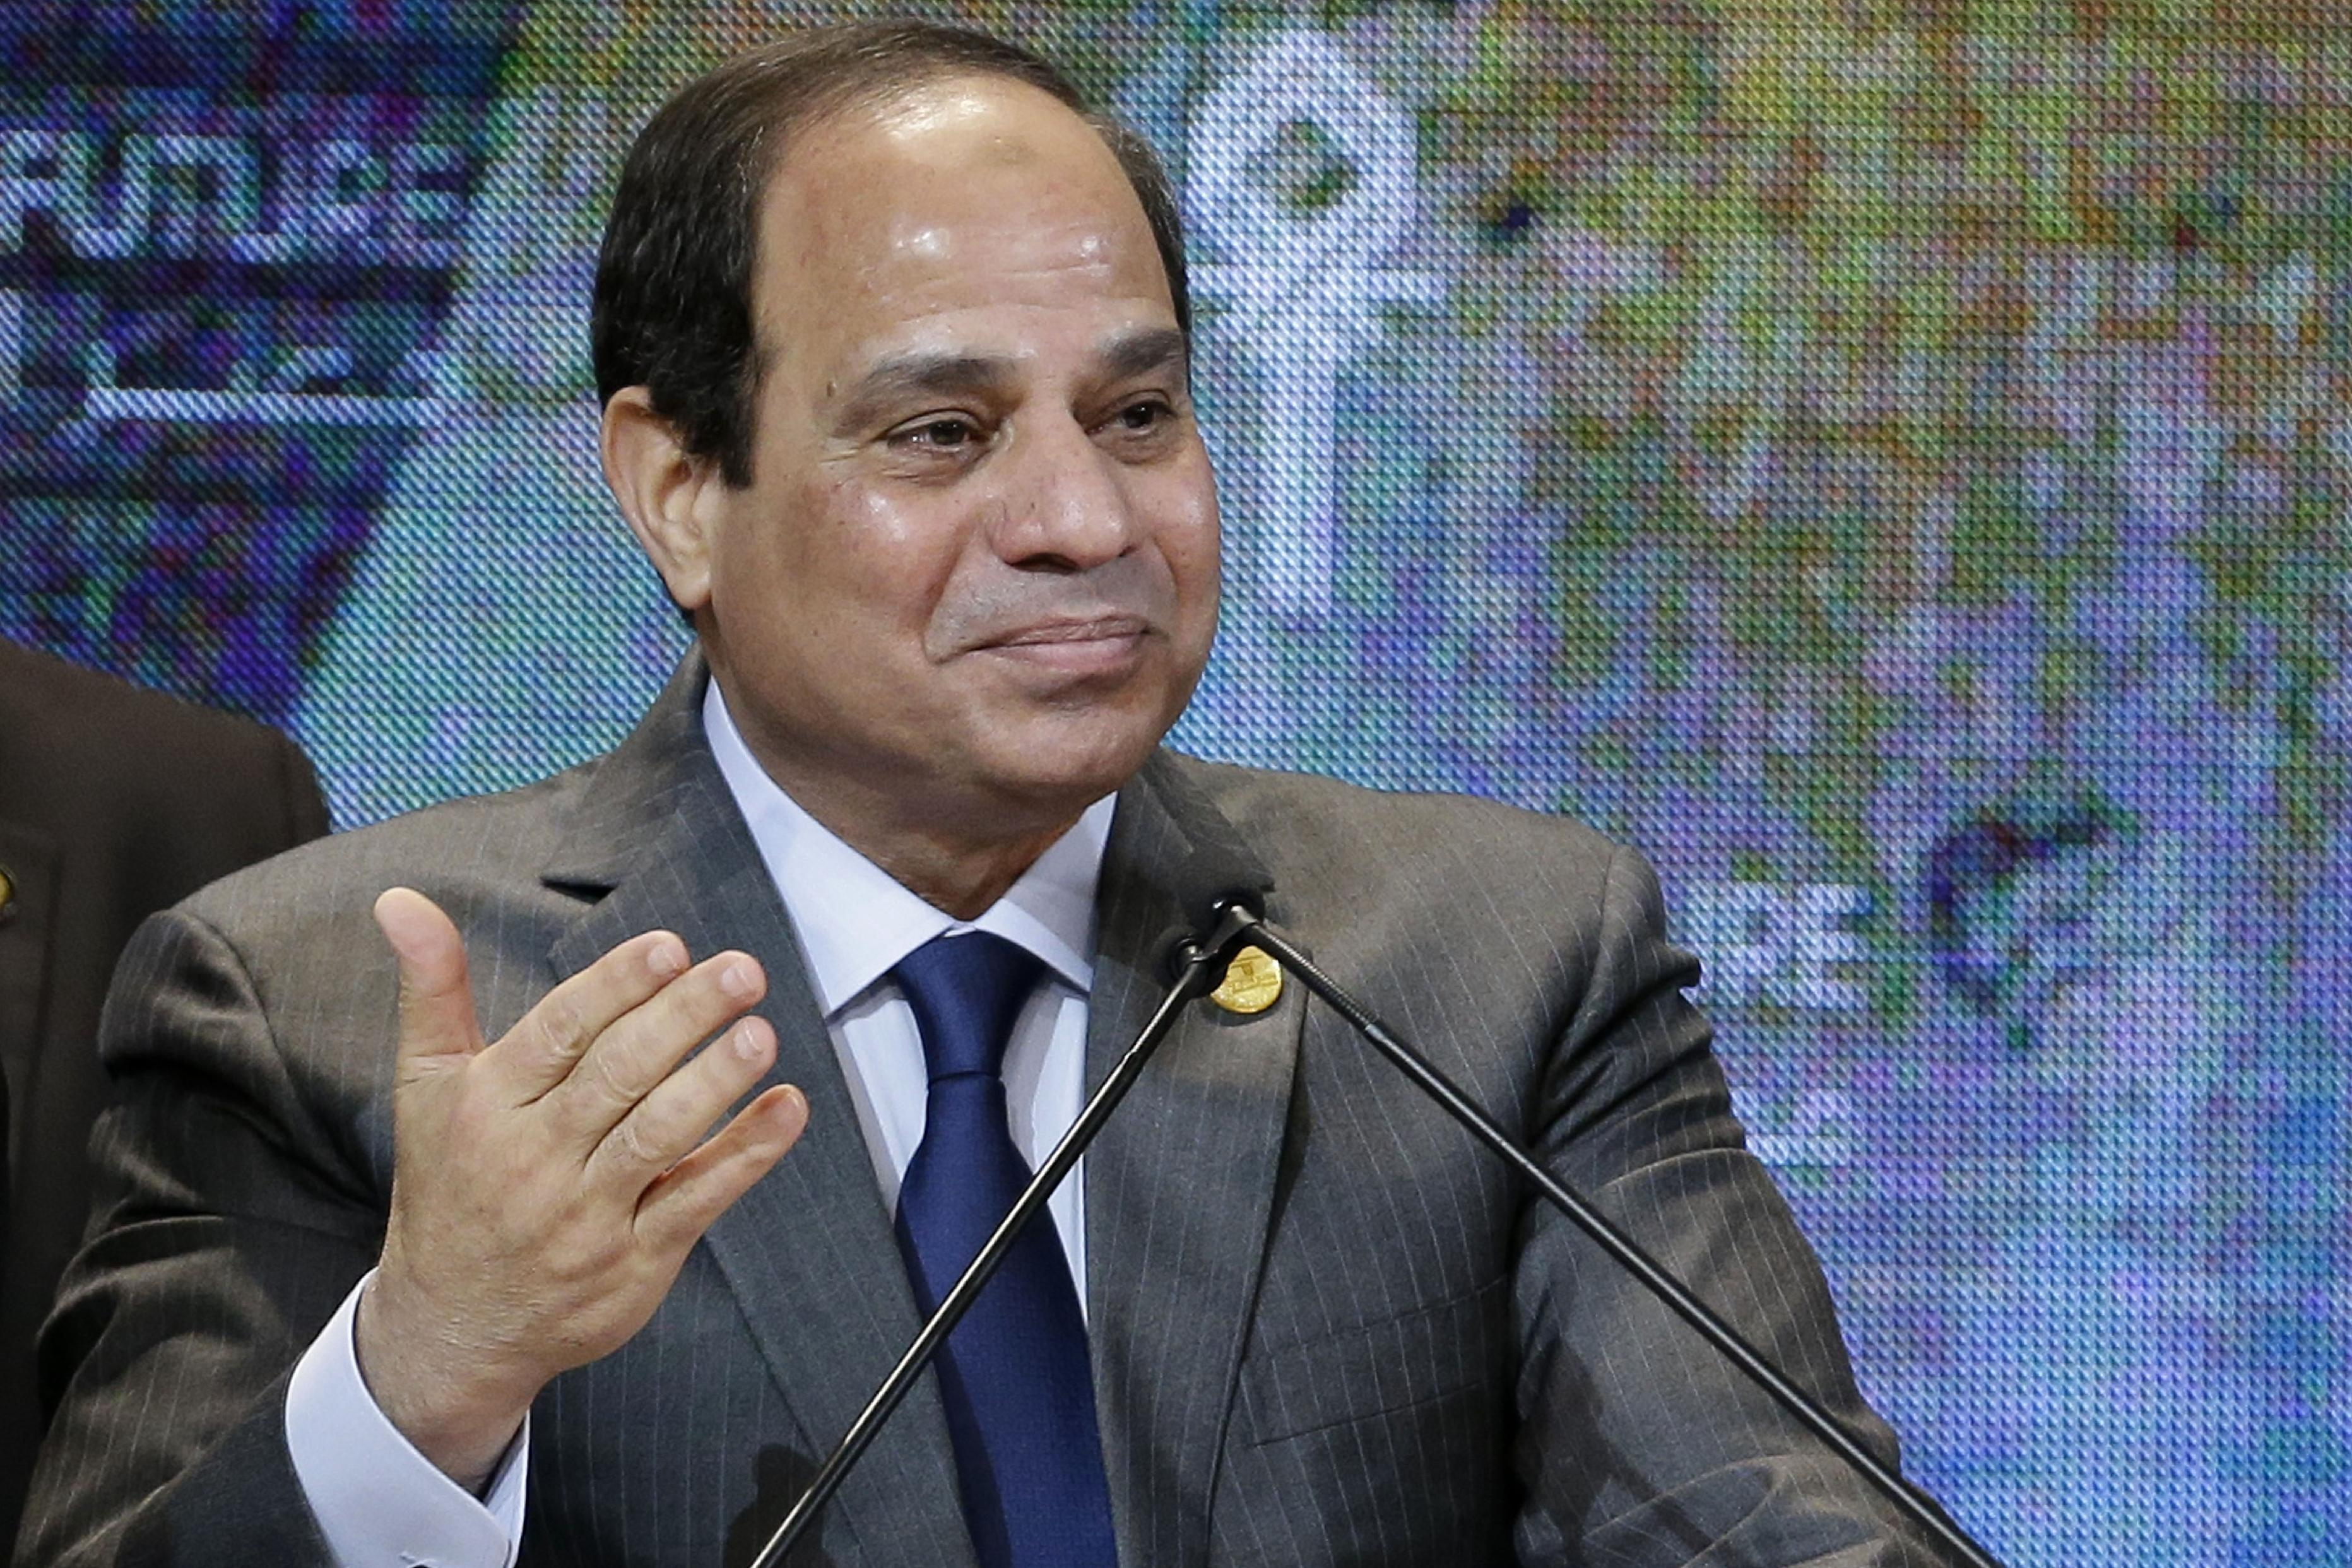 Egypt's el-Sissi heads to Germany, seeking Western support